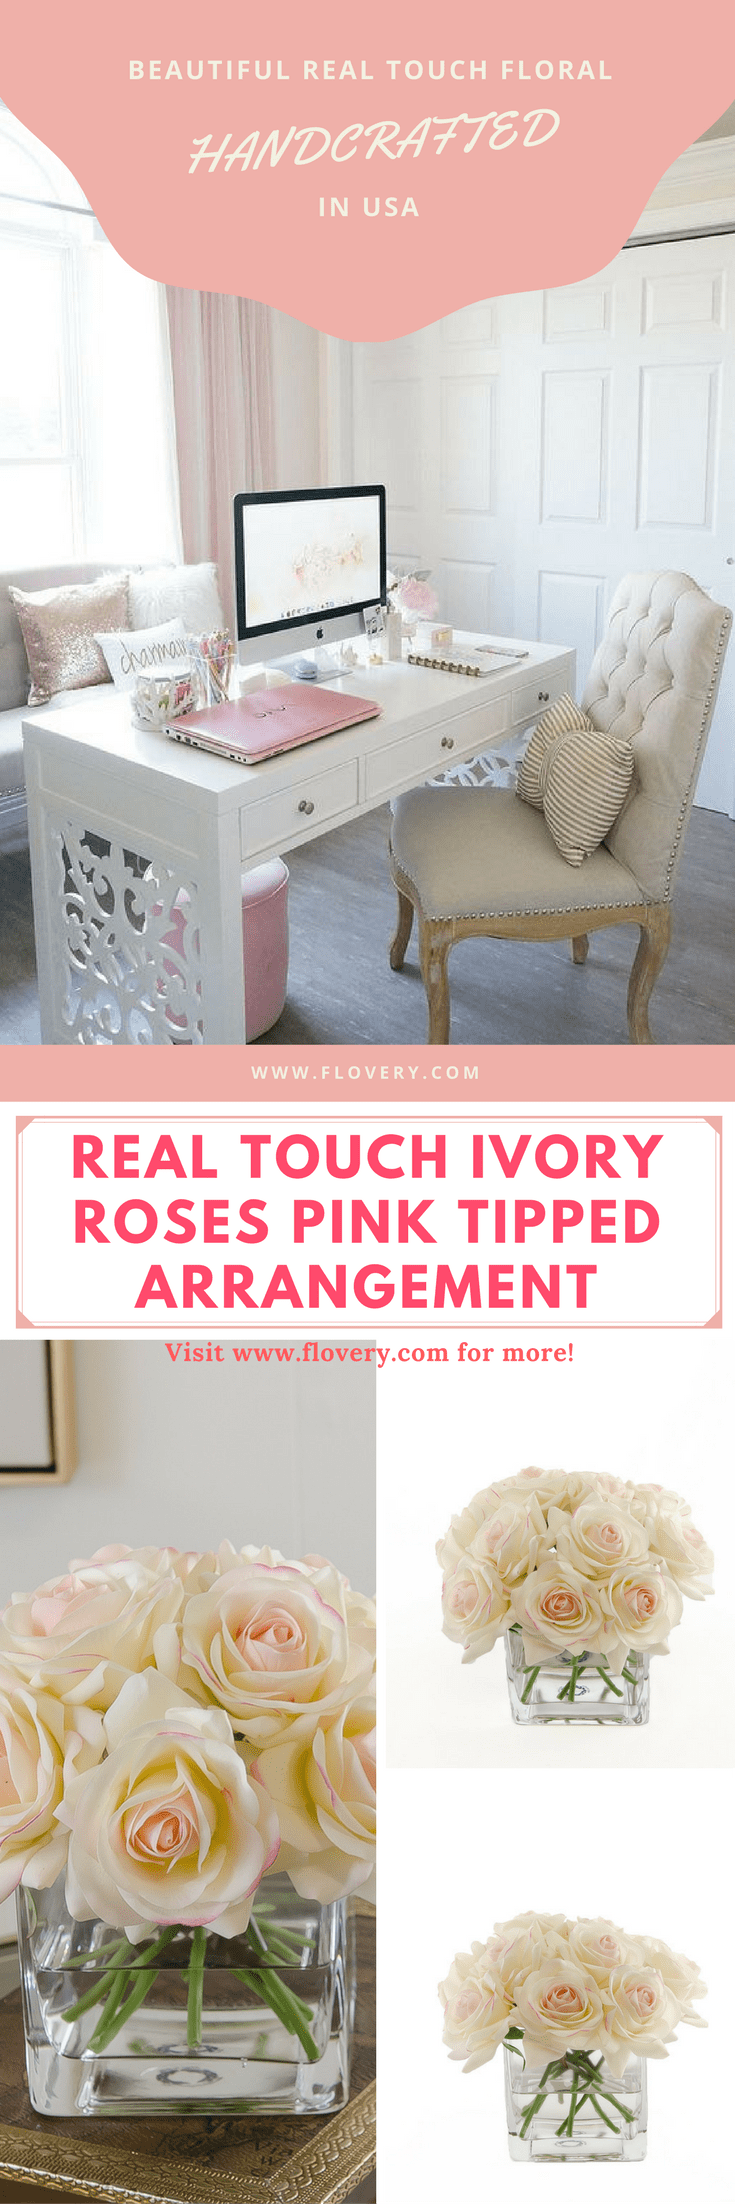 Real touch pink rose arrangement